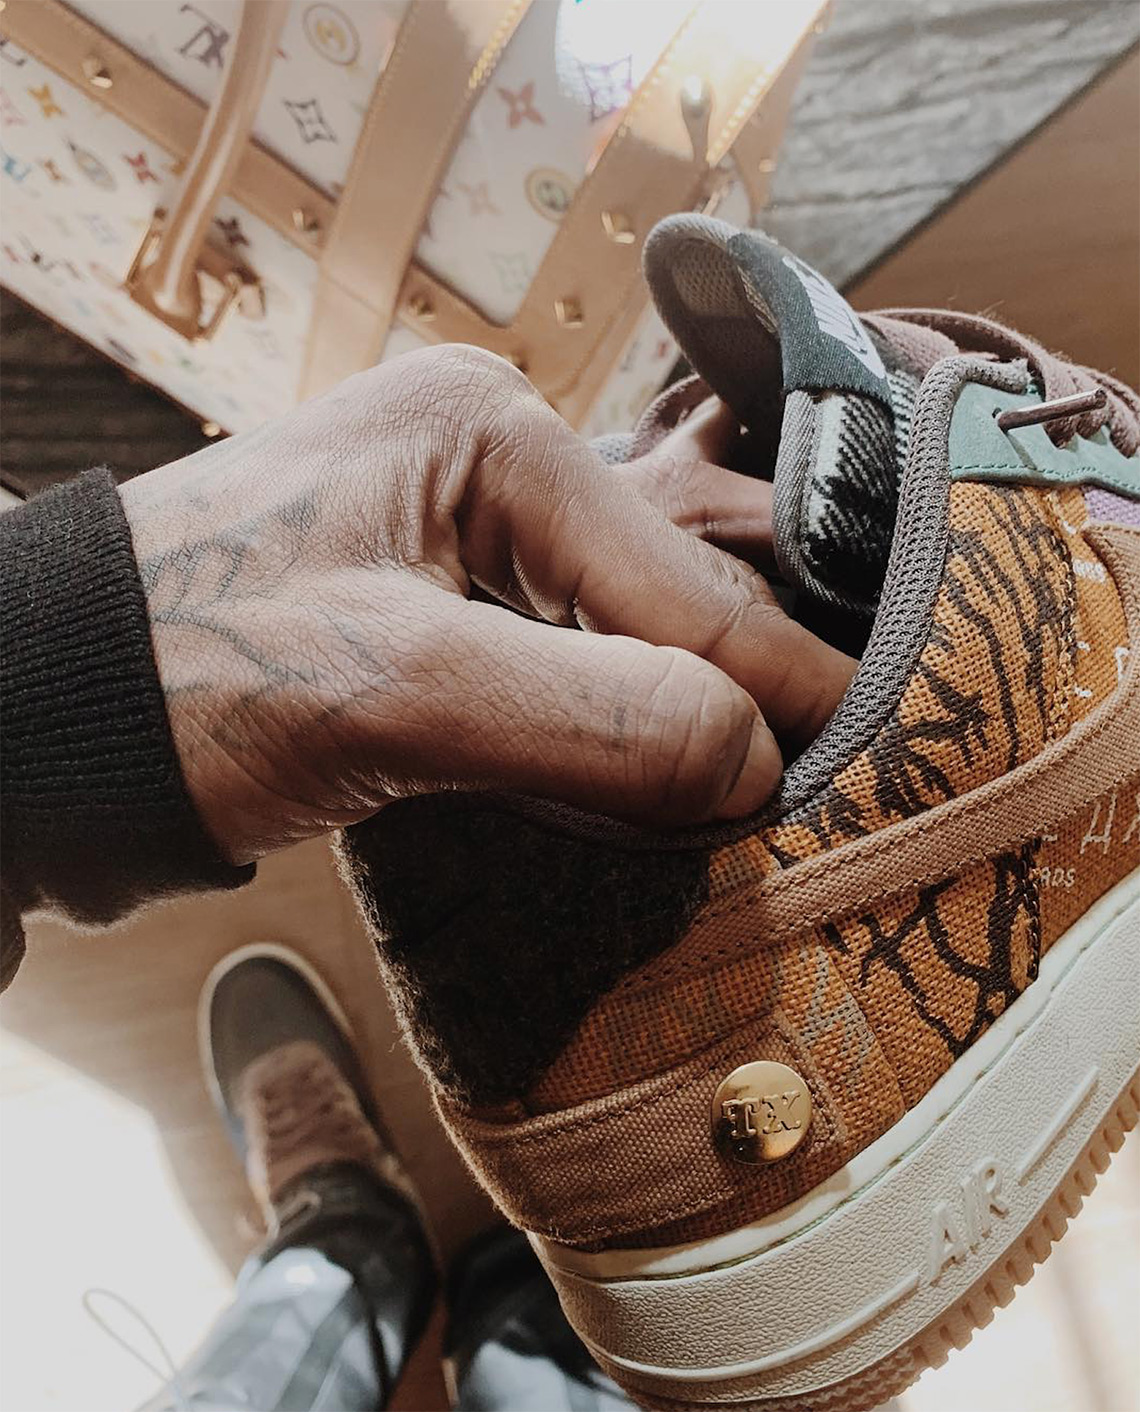 promo code 08c66 5f719 Enjoy another look at these upcoming Travis Scott collaborations here and  stay tuned for any release information and better images as they become  available.